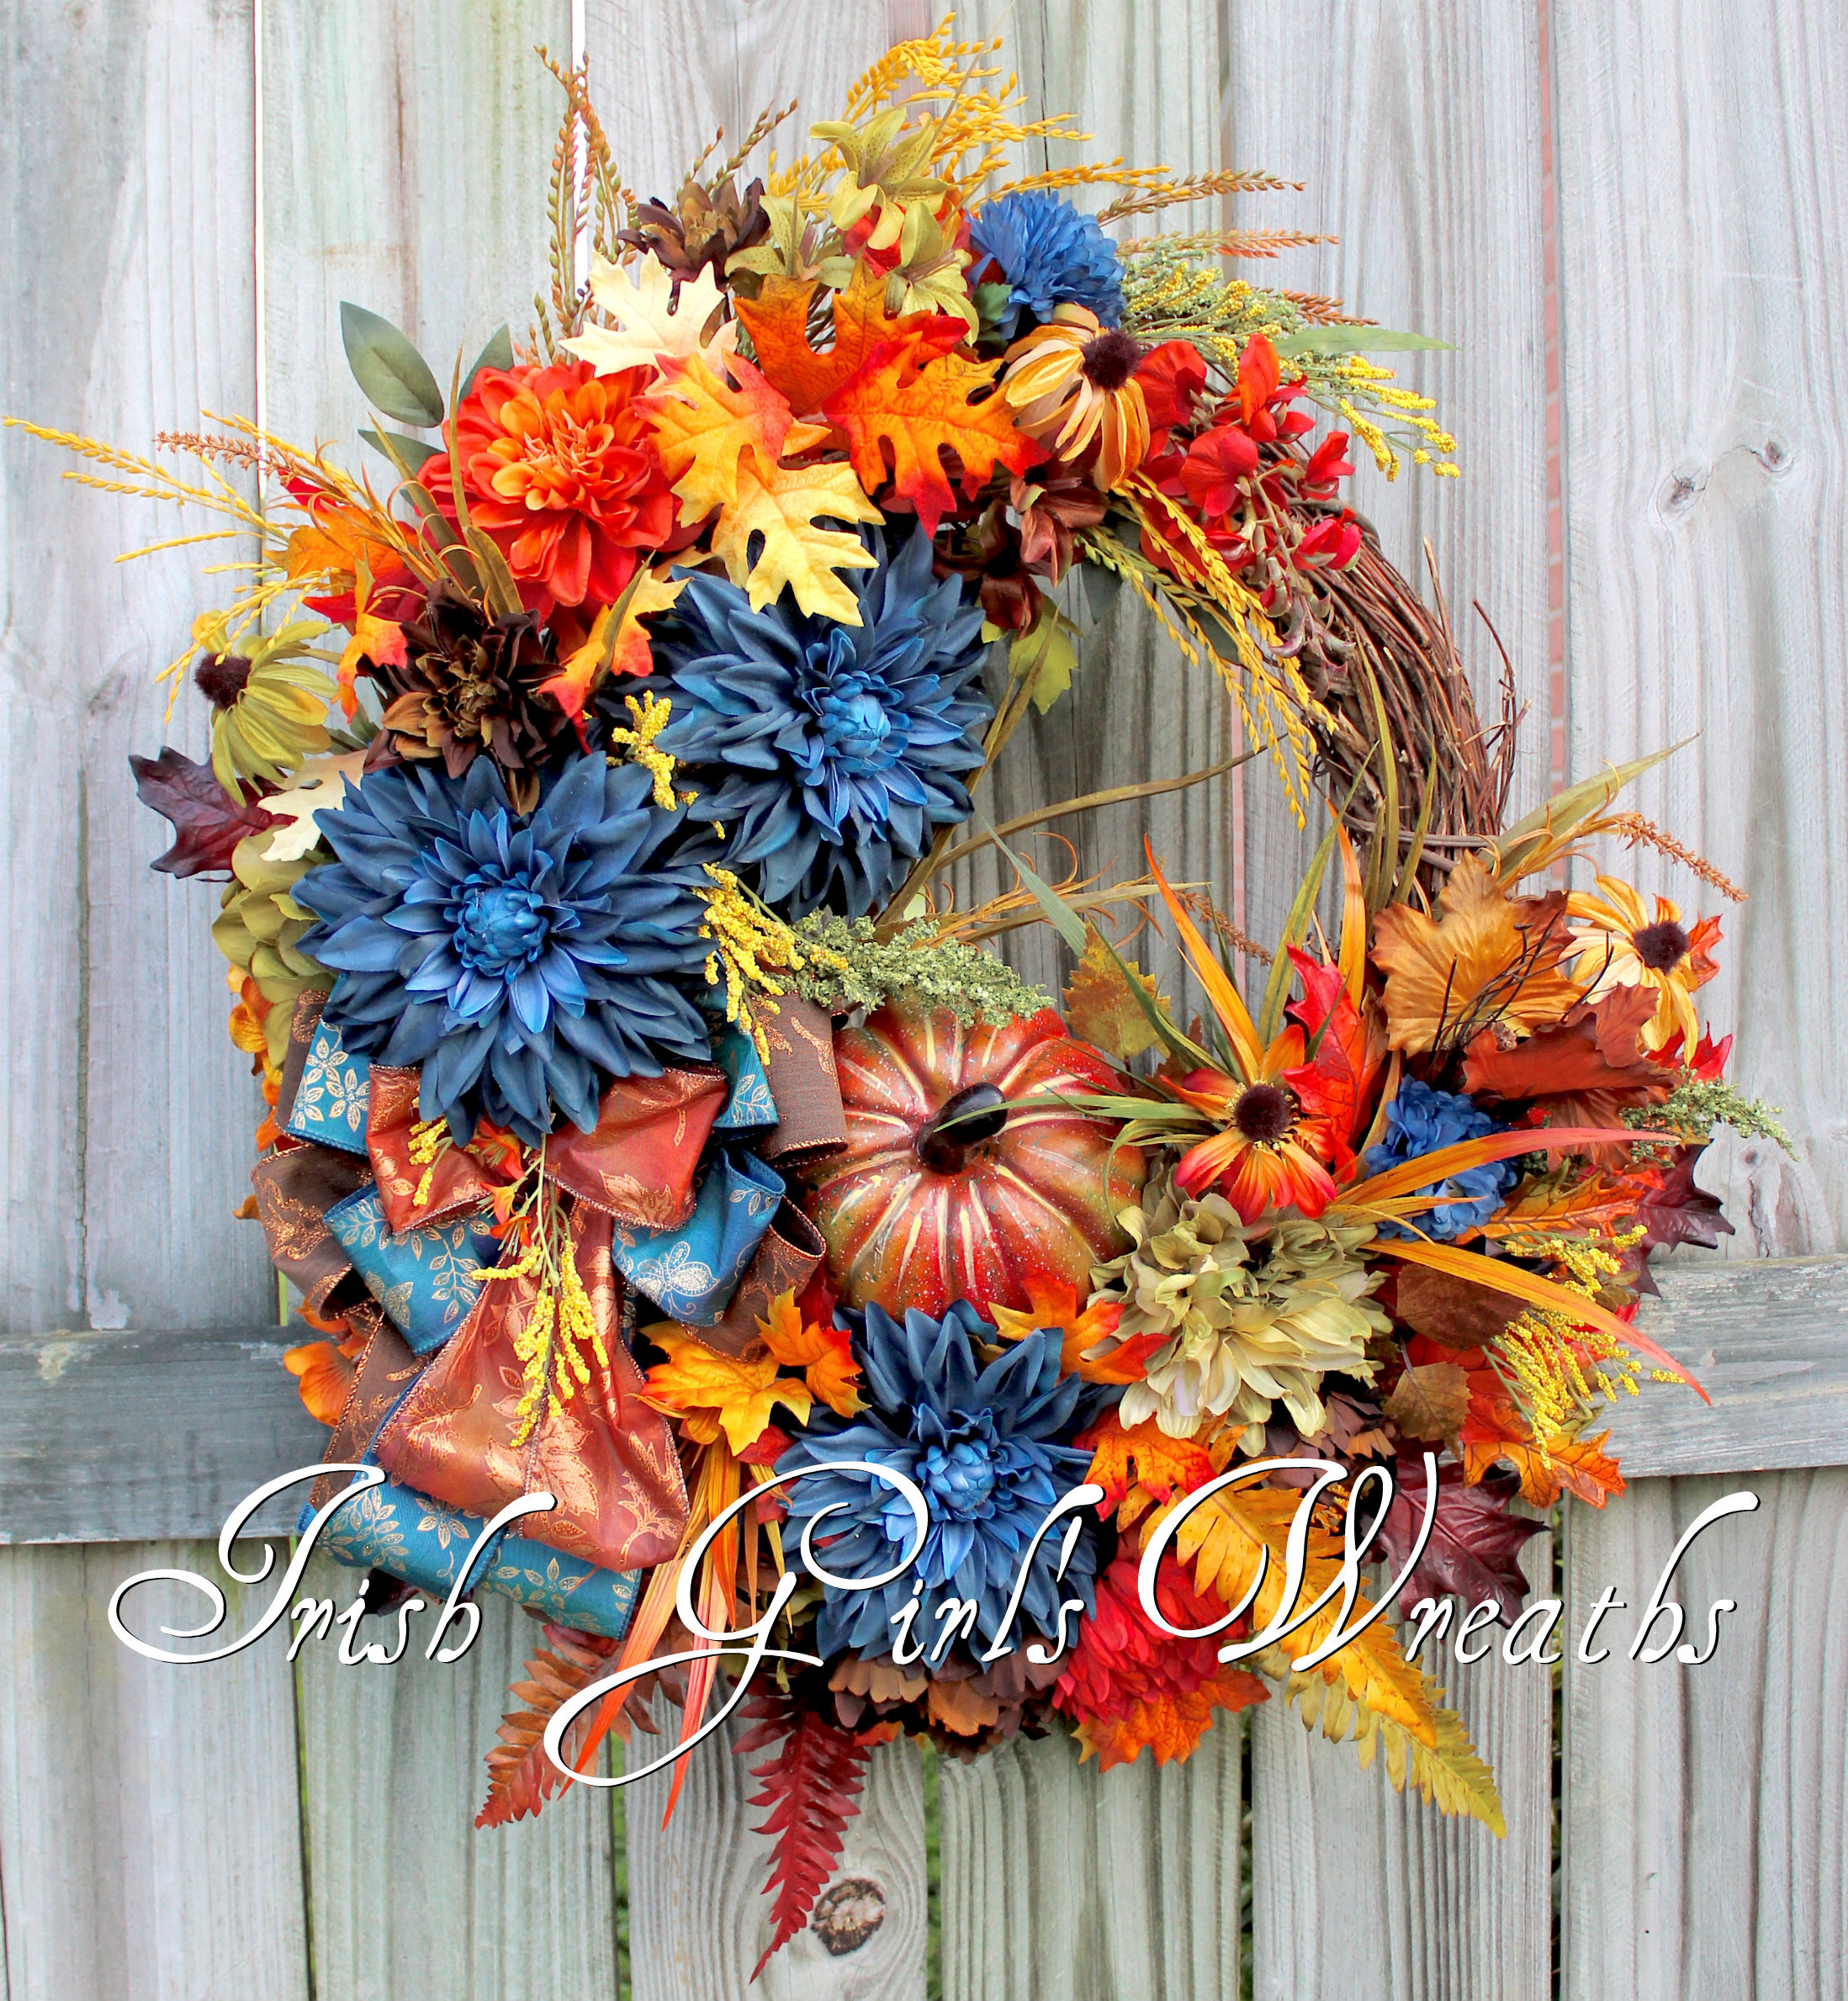 Tuscan Autumn Peacock Teal Blue Beauty Wreath, Rust, Moss, Chocolate brown Large Wreath